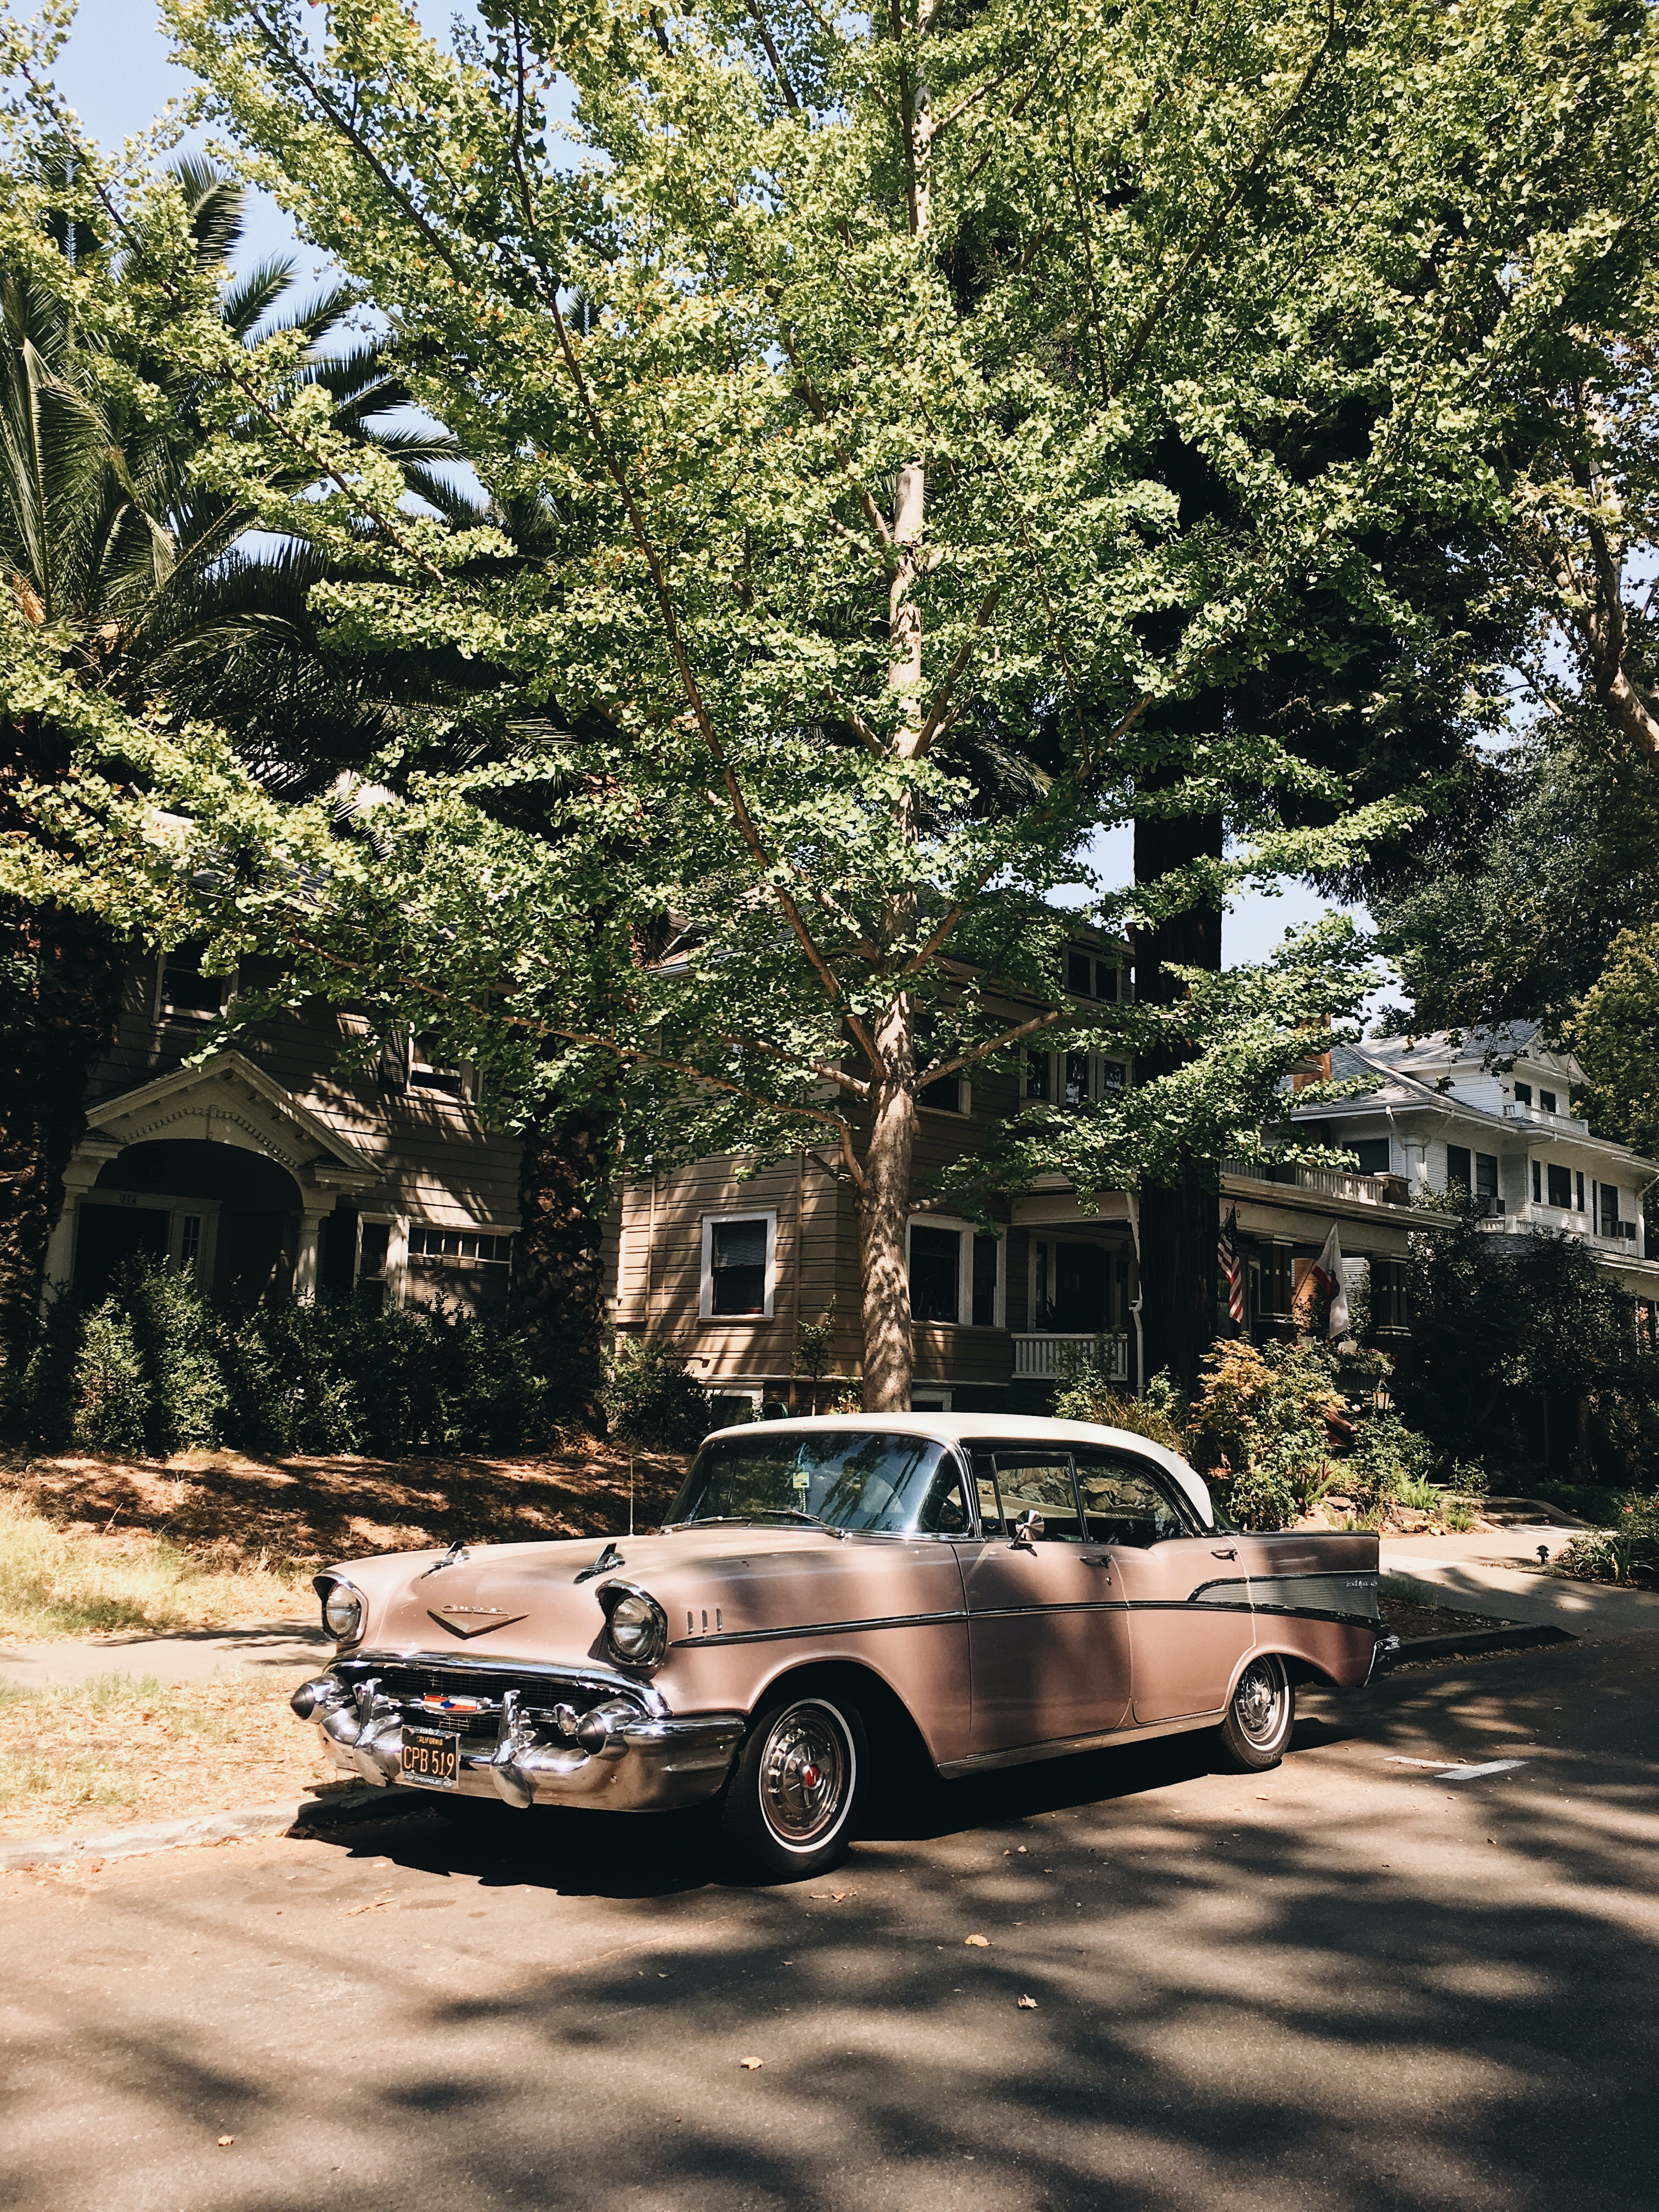 vintage pink sedan parked in front of tree